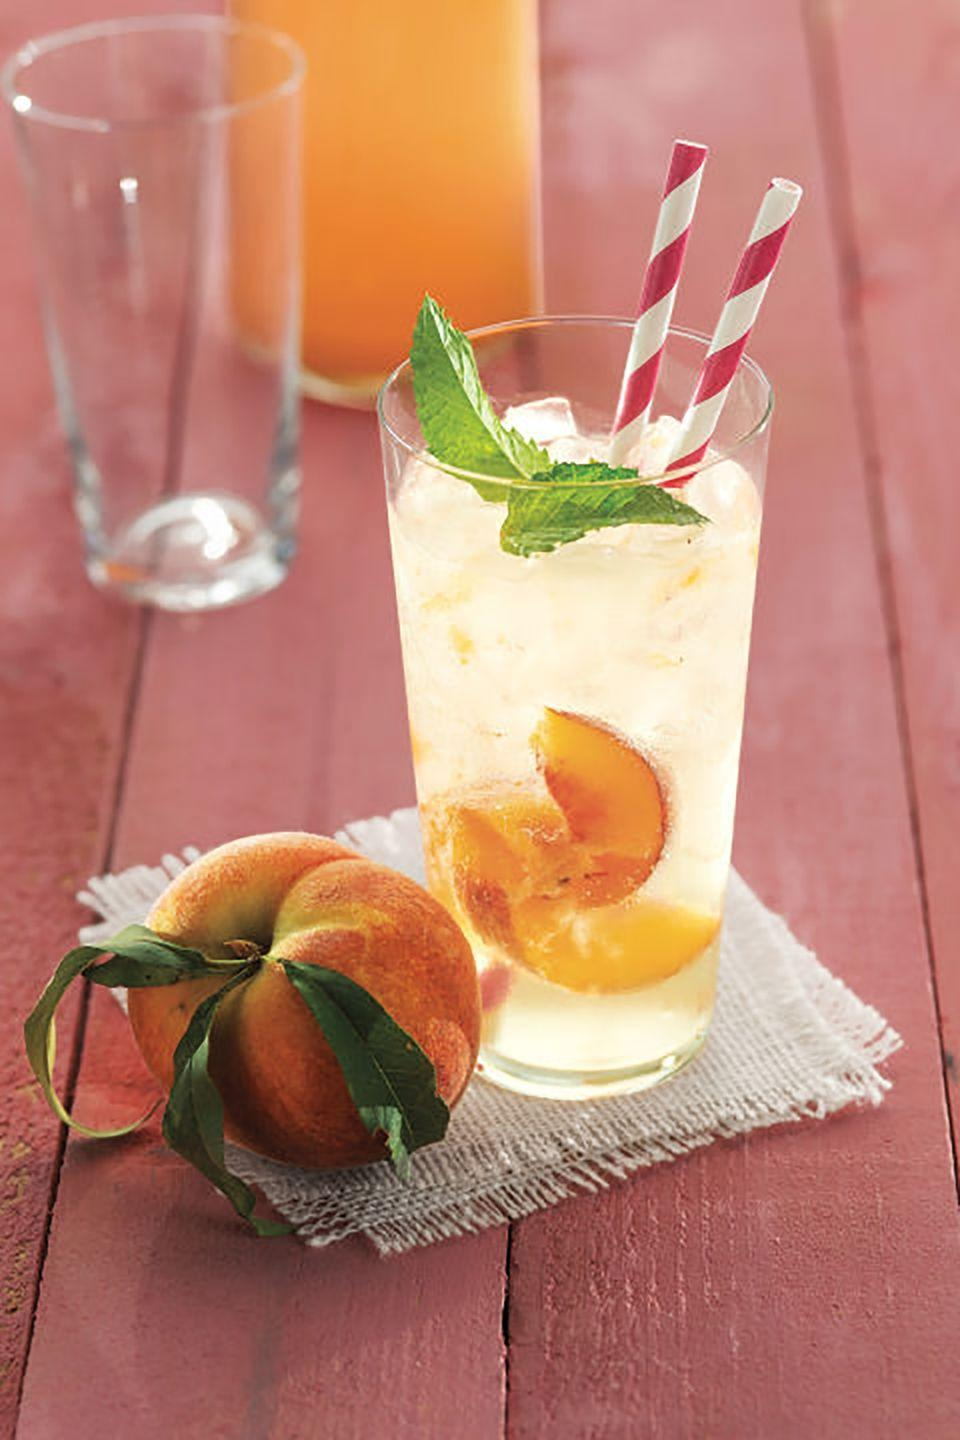 """<p>Kids will love sipping on this sweet, refreshing drink during your Memorial Day festivities, while adults will enjoy adding a splash of rum for added kick.</p><p><strong><a href=""""https://www.countryliving.com/food-drinks/recipes/a4421/ginger-peach-soda-recipe-clv0613/"""" rel=""""nofollow noopener"""" target=""""_blank"""" data-ylk=""""slk:Get the recipe"""" class=""""link rapid-noclick-resp"""">Get the recipe</a>.</strong> </p><p><a class=""""link rapid-noclick-resp"""" href=""""https://www.amazon.com/Hiware-200-Pack-Biodegradable-Paper-Straws/dp/B07D7L5Z85?tag=syn-yahoo-20&ascsubtag=%5Bartid%7C10050.g.3290%5Bsrc%7Cyahoo-us"""" rel=""""nofollow noopener"""" target=""""_blank"""" data-ylk=""""slk:SHOP STRAWS"""">SHOP STRAWS</a> </p>"""